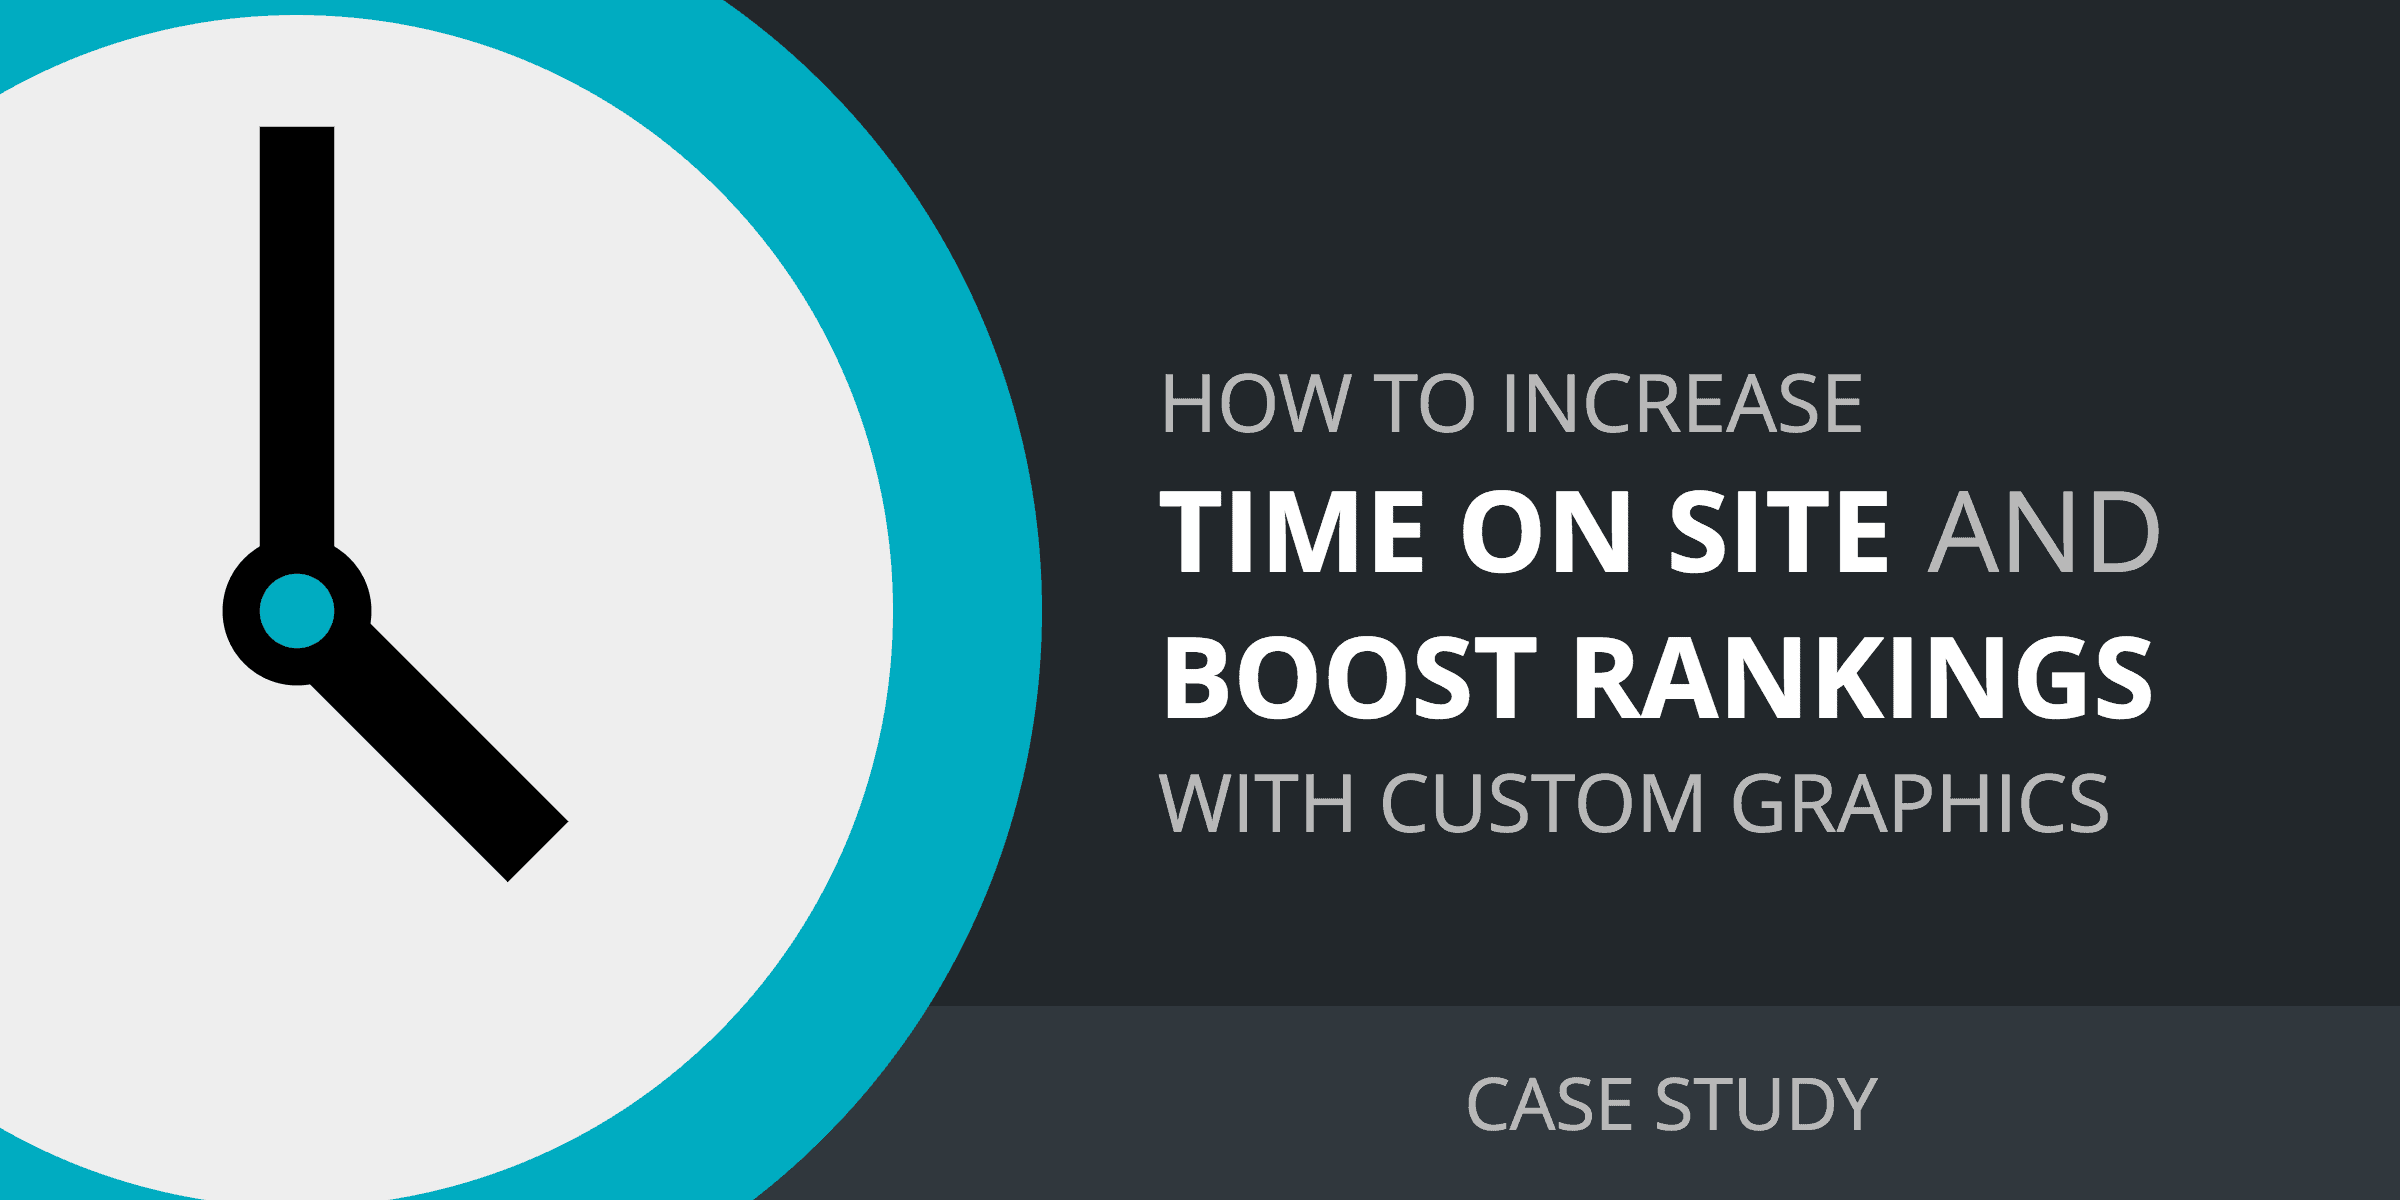 How to increase time on site with custom graphics